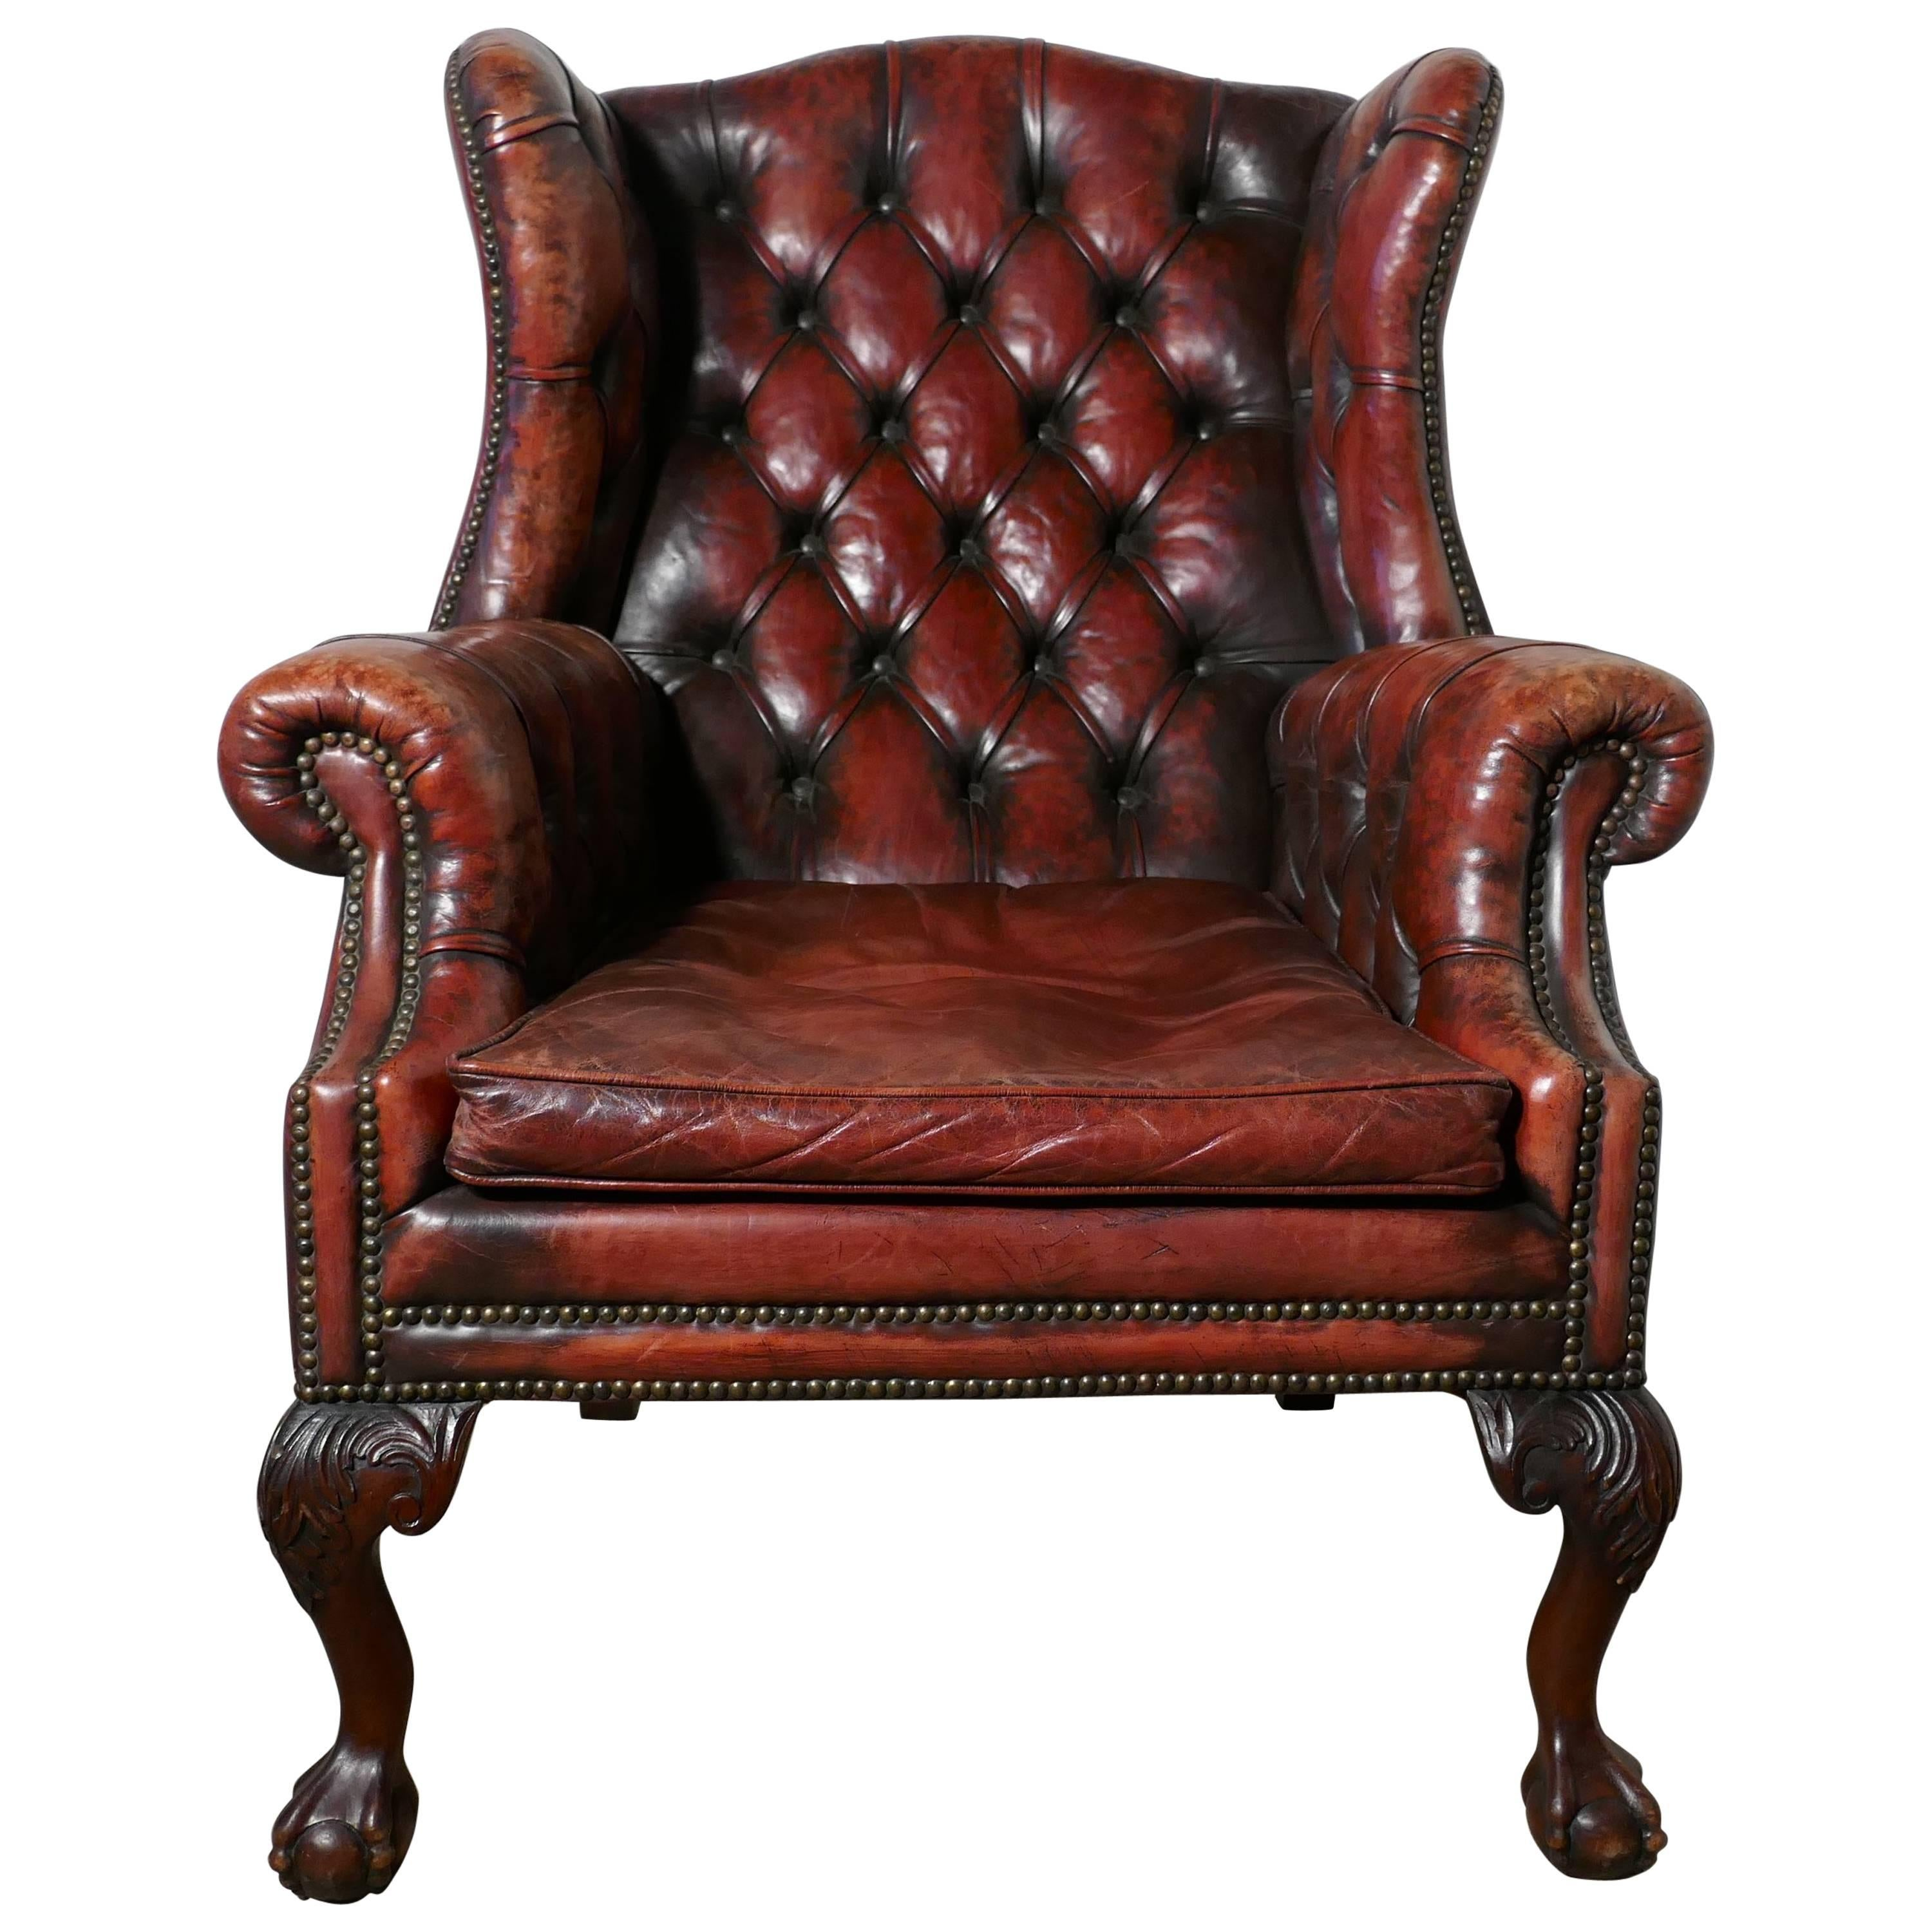 gentlemans chair wedding reception covers edwardian gentleman s wing back leather library at 1stdibs for sale